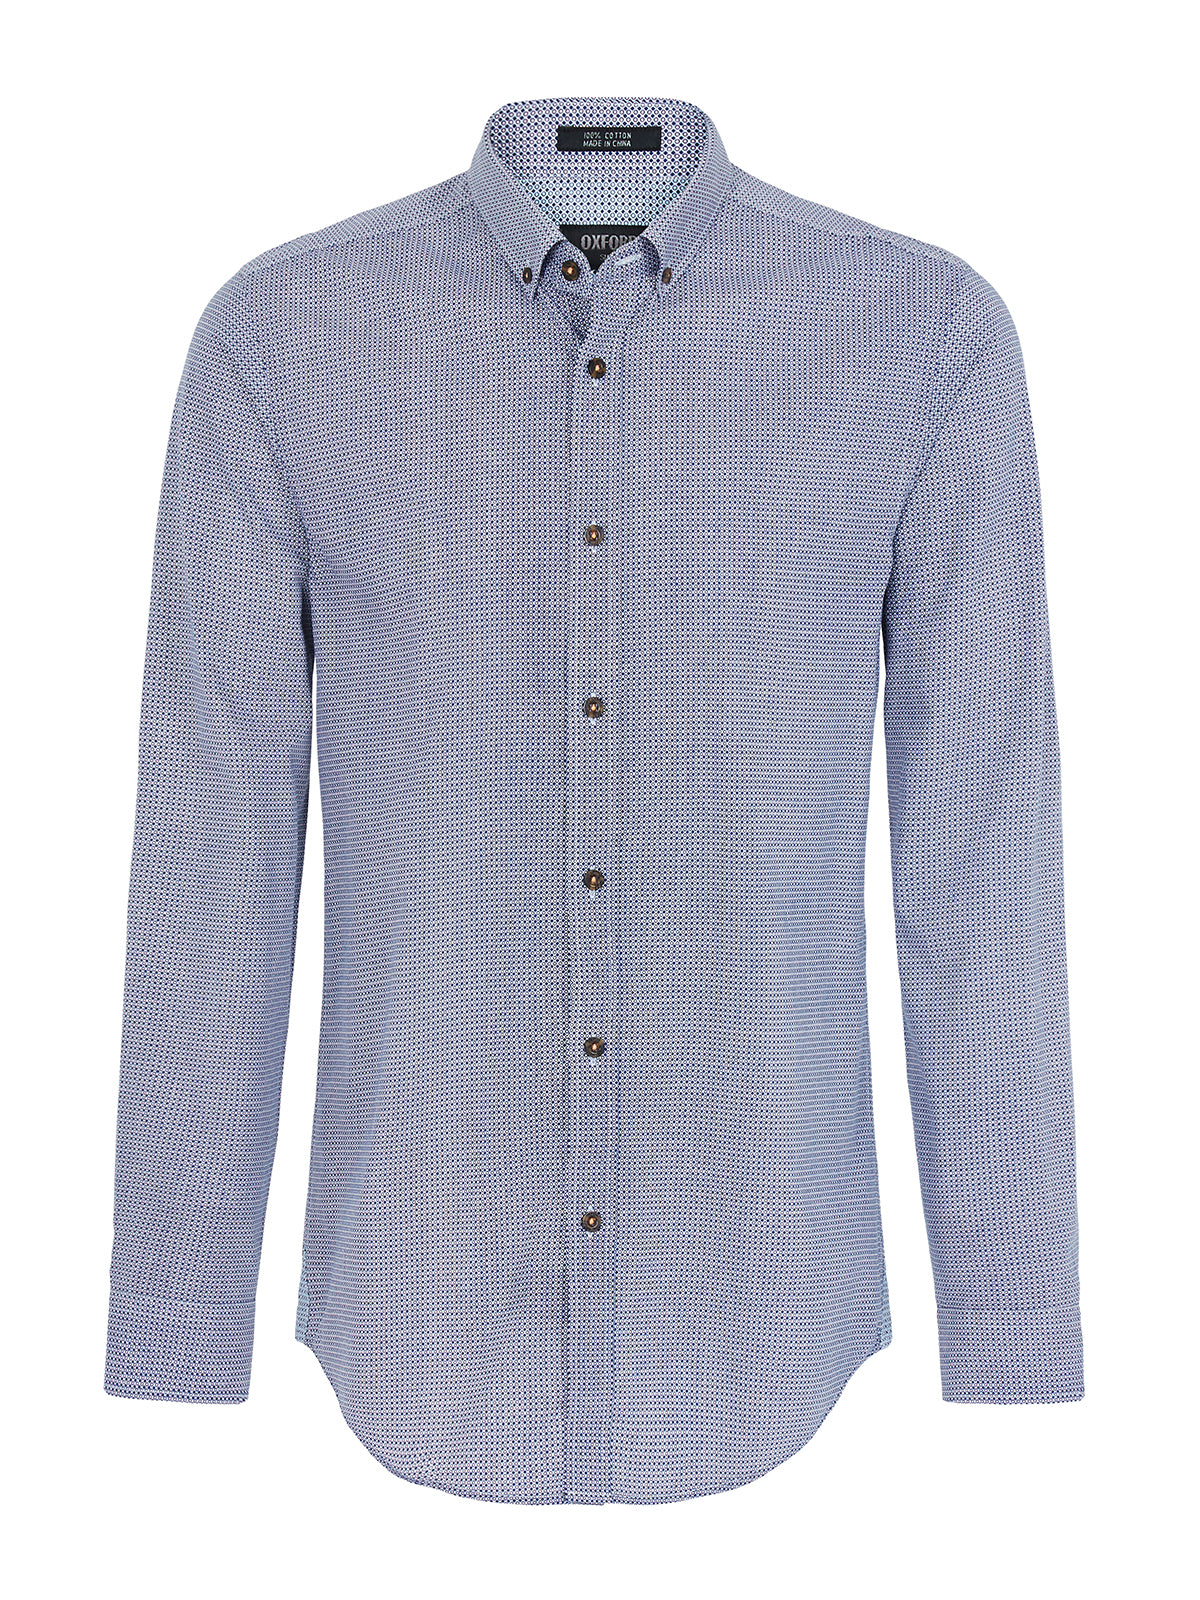 STRATTON PRINTED SPOT SHIRT BLUE